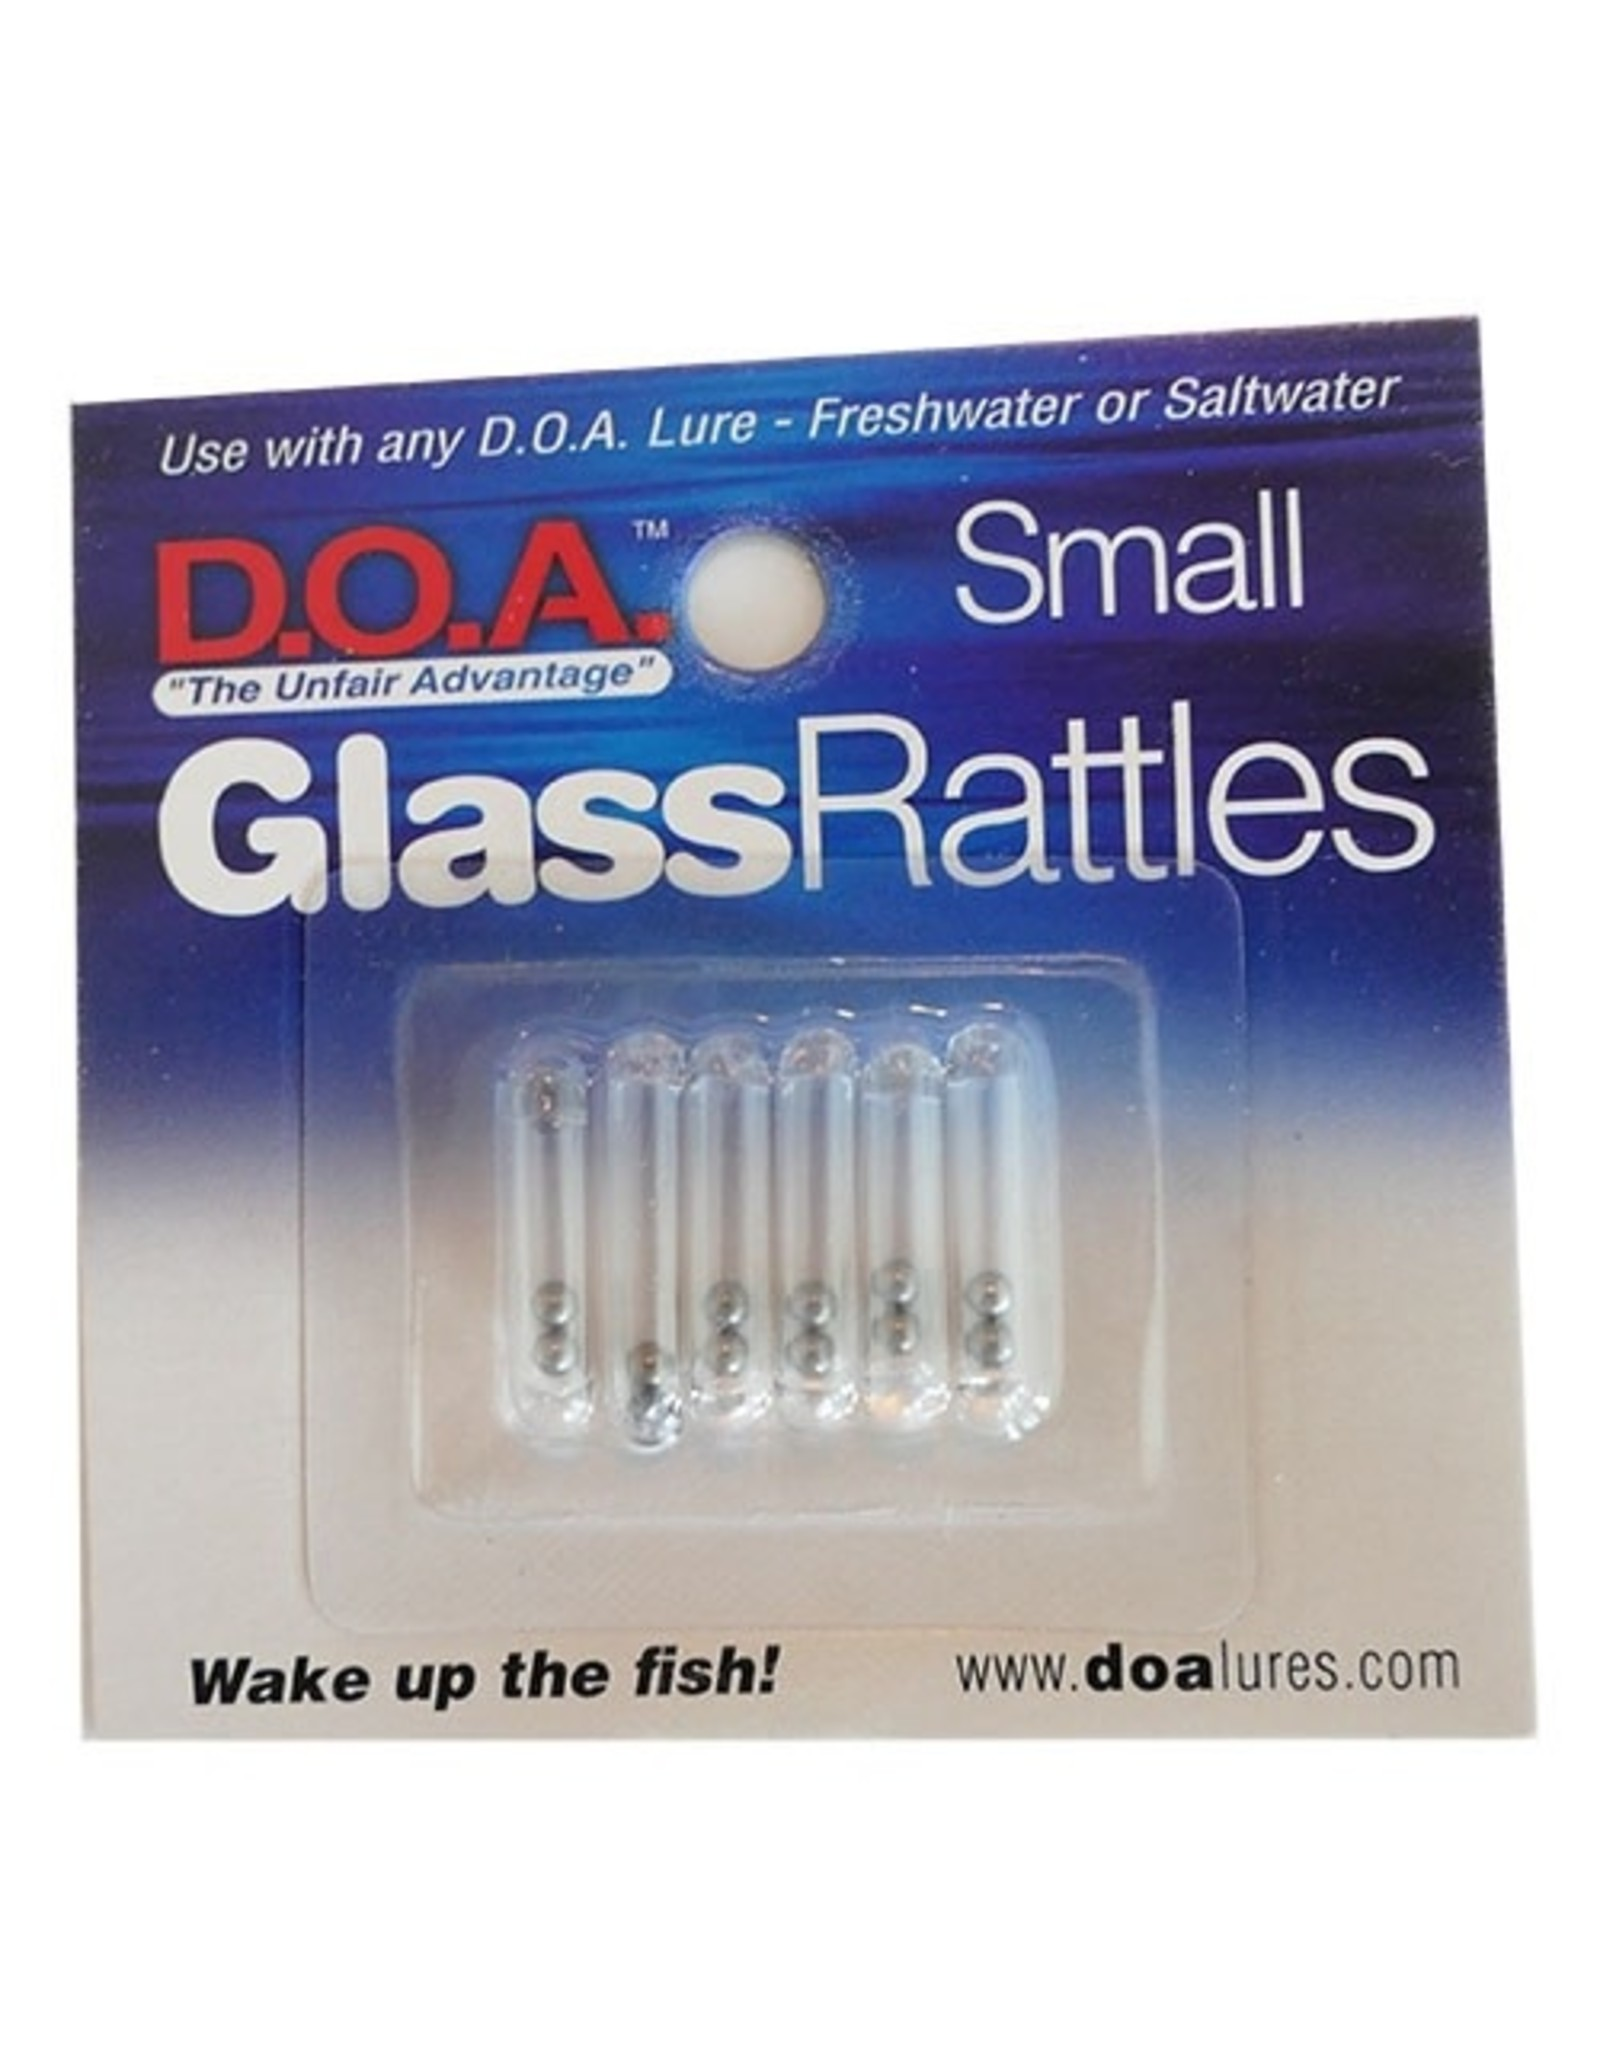 DOA Glass Rattles